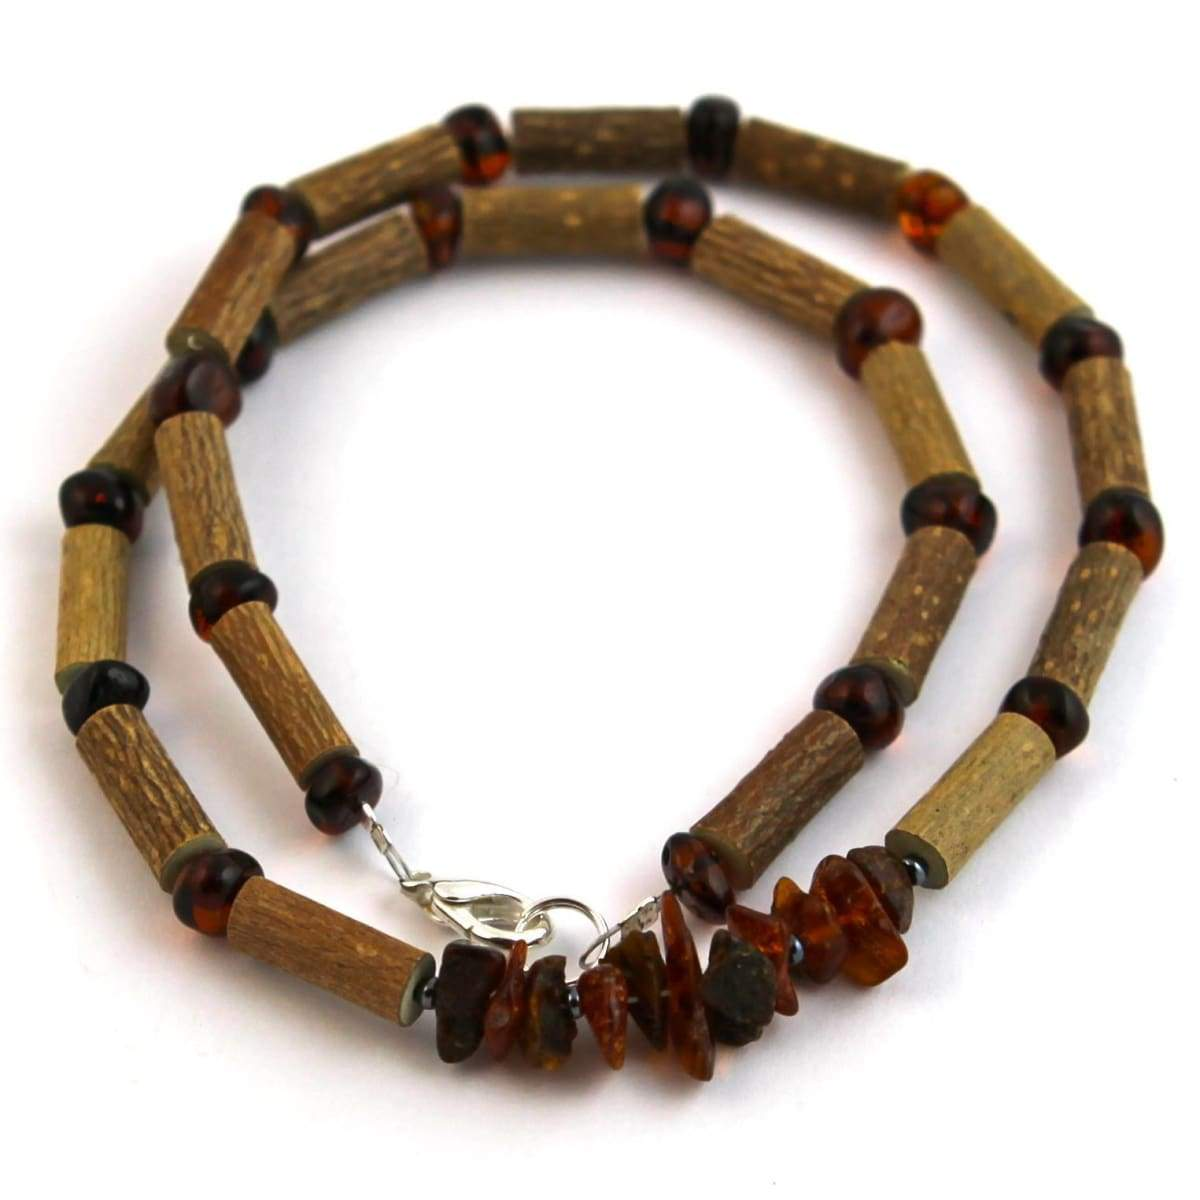 Hazel-Amber Dark Cognac (Chips On Necklace) - 16 Necklace - Hazelwood & Baltic Amber Jewelry